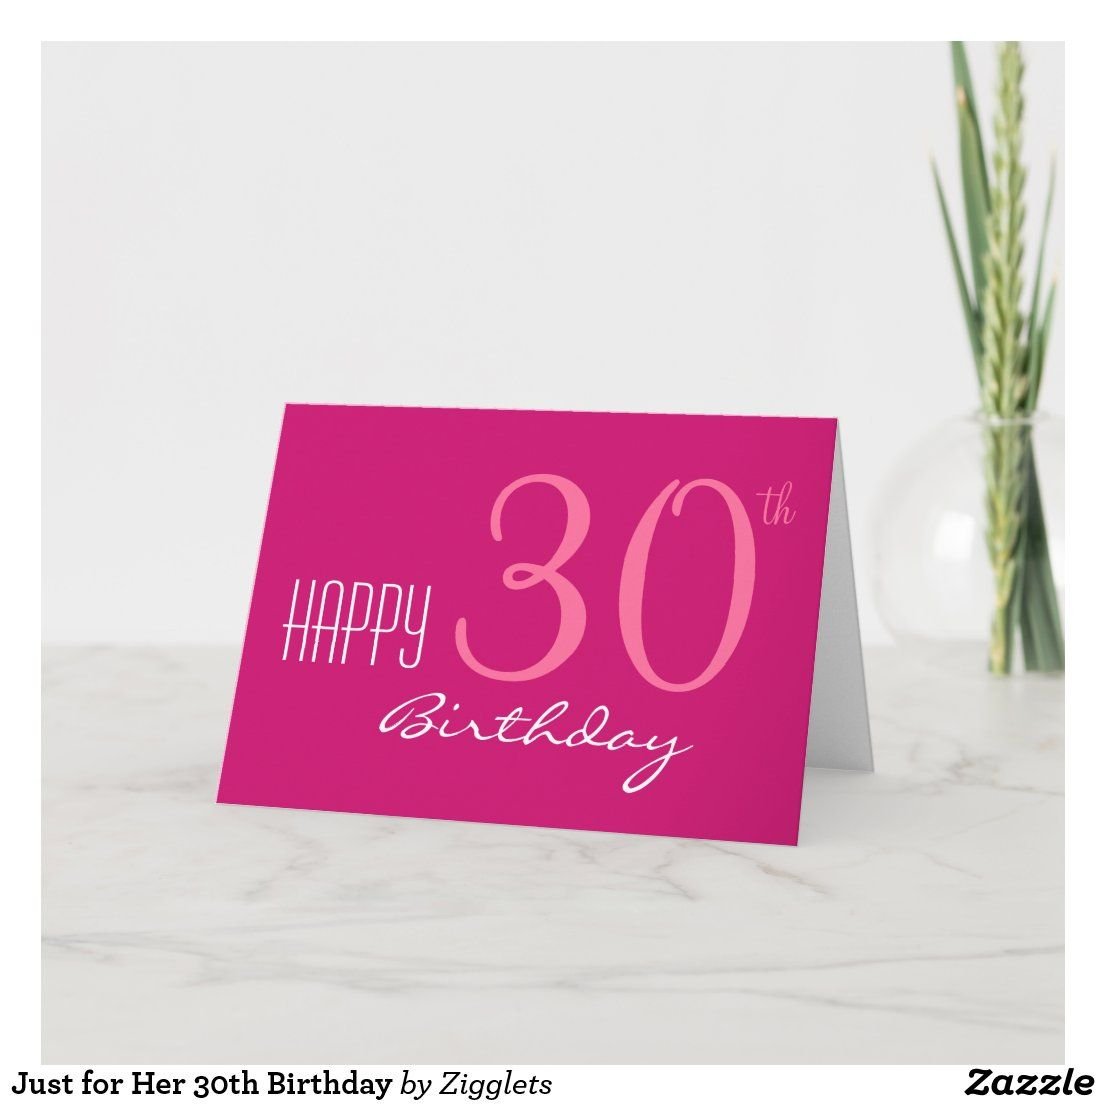 Just For Her 30th Birthday Card Zazzle Com 30th Birthday Cards Birthday Cards Birthday Cards For Her